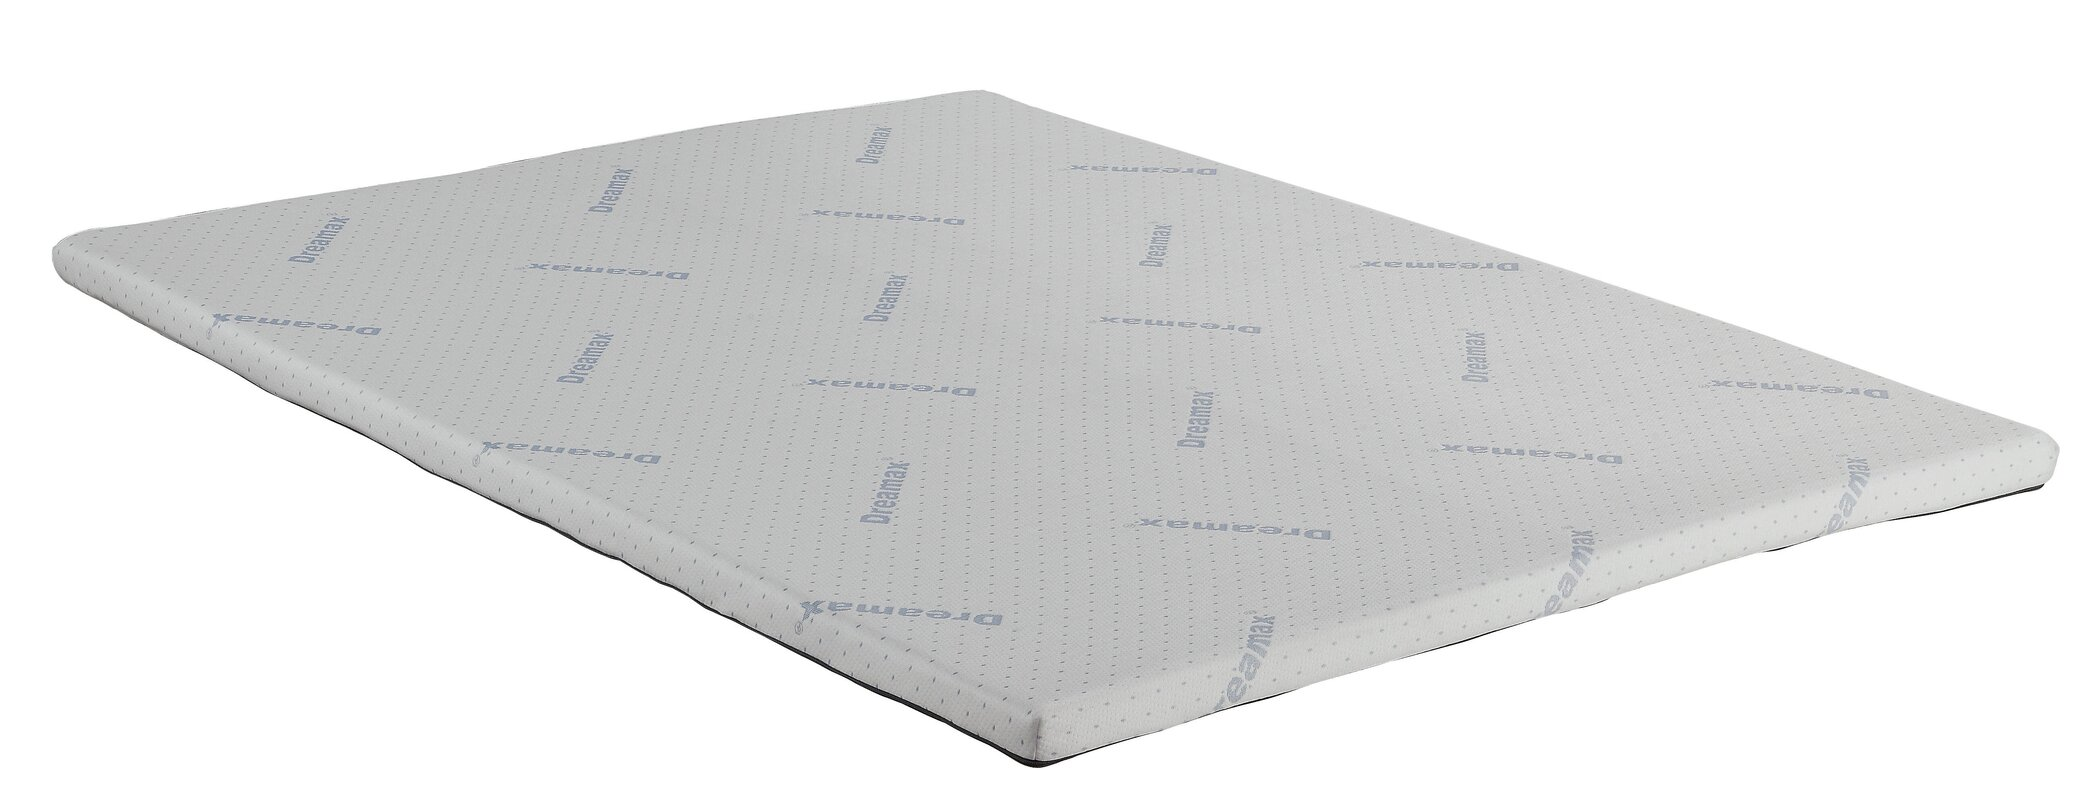 "Arabella 2"" Memory Foam Mattress Topper"